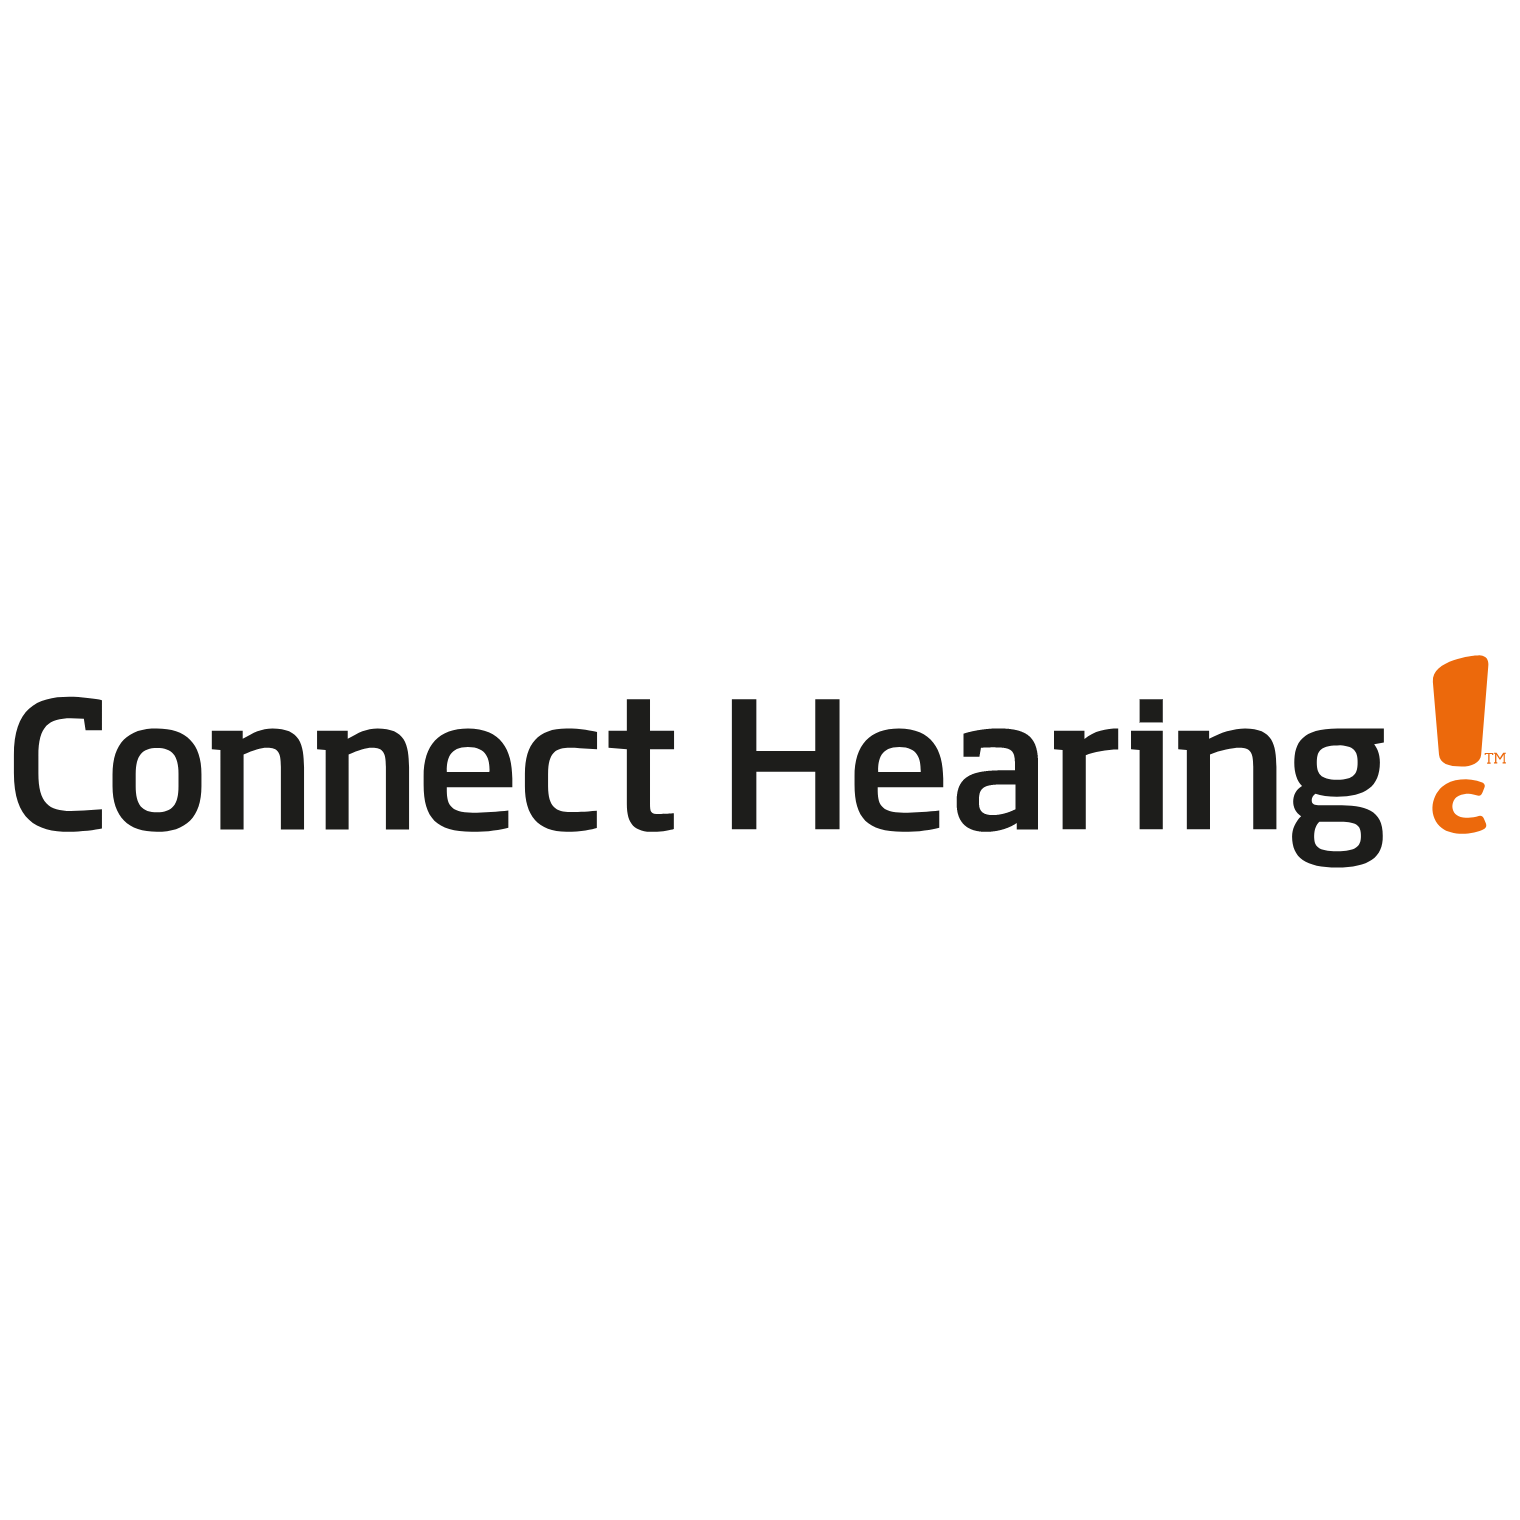 Connect Hearing - Tahmoor, NSW 2573 - (02) 4861 3754 | ShowMeLocal.com